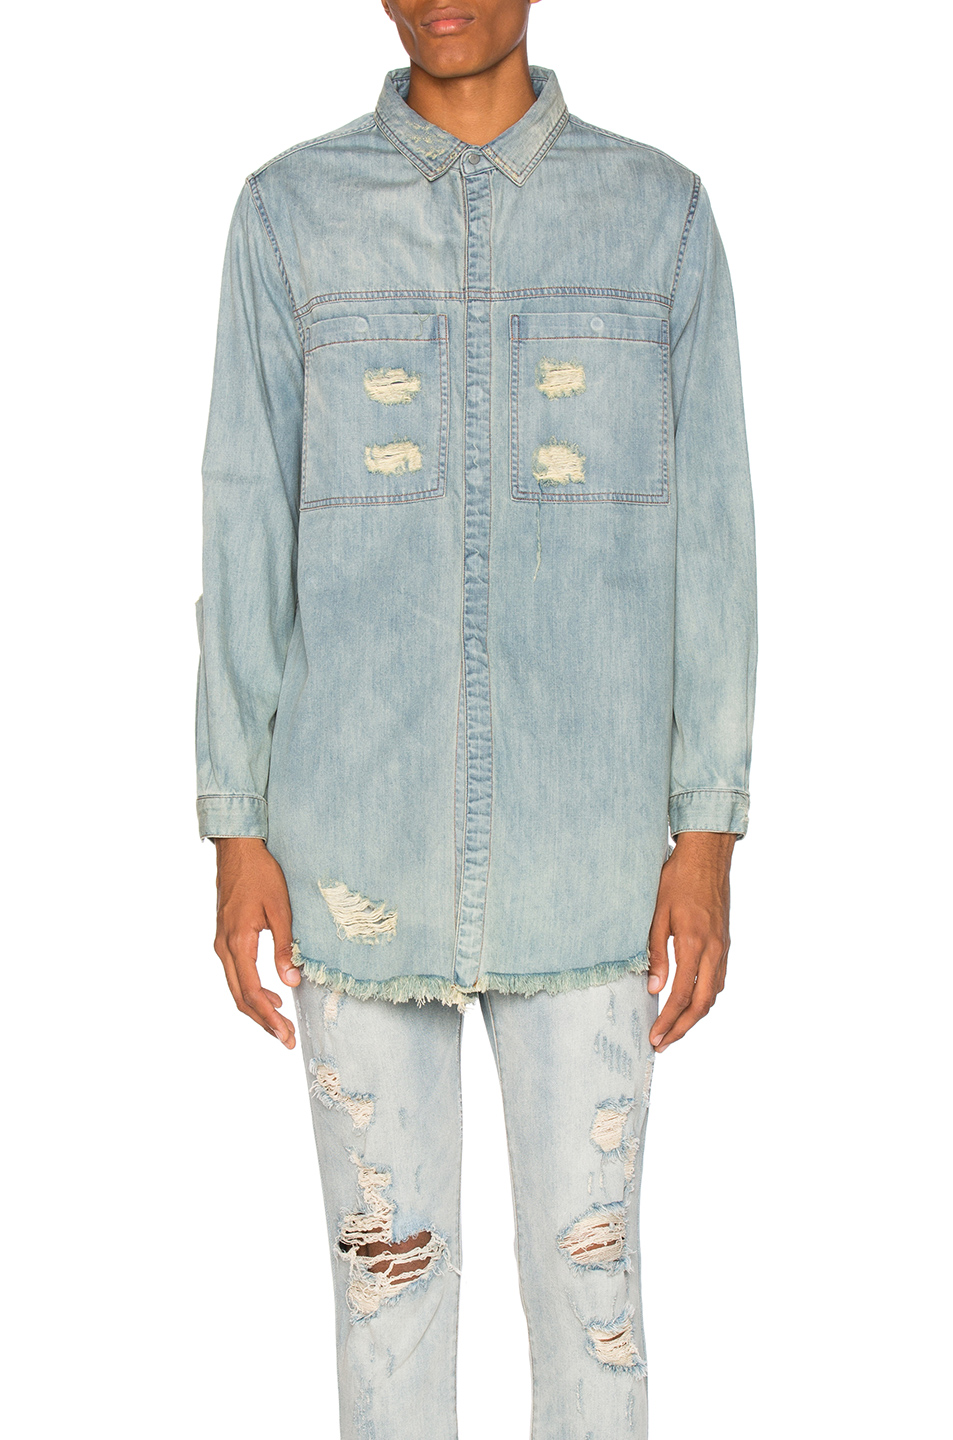 Stampd Distressed Denim Shirt in Blue